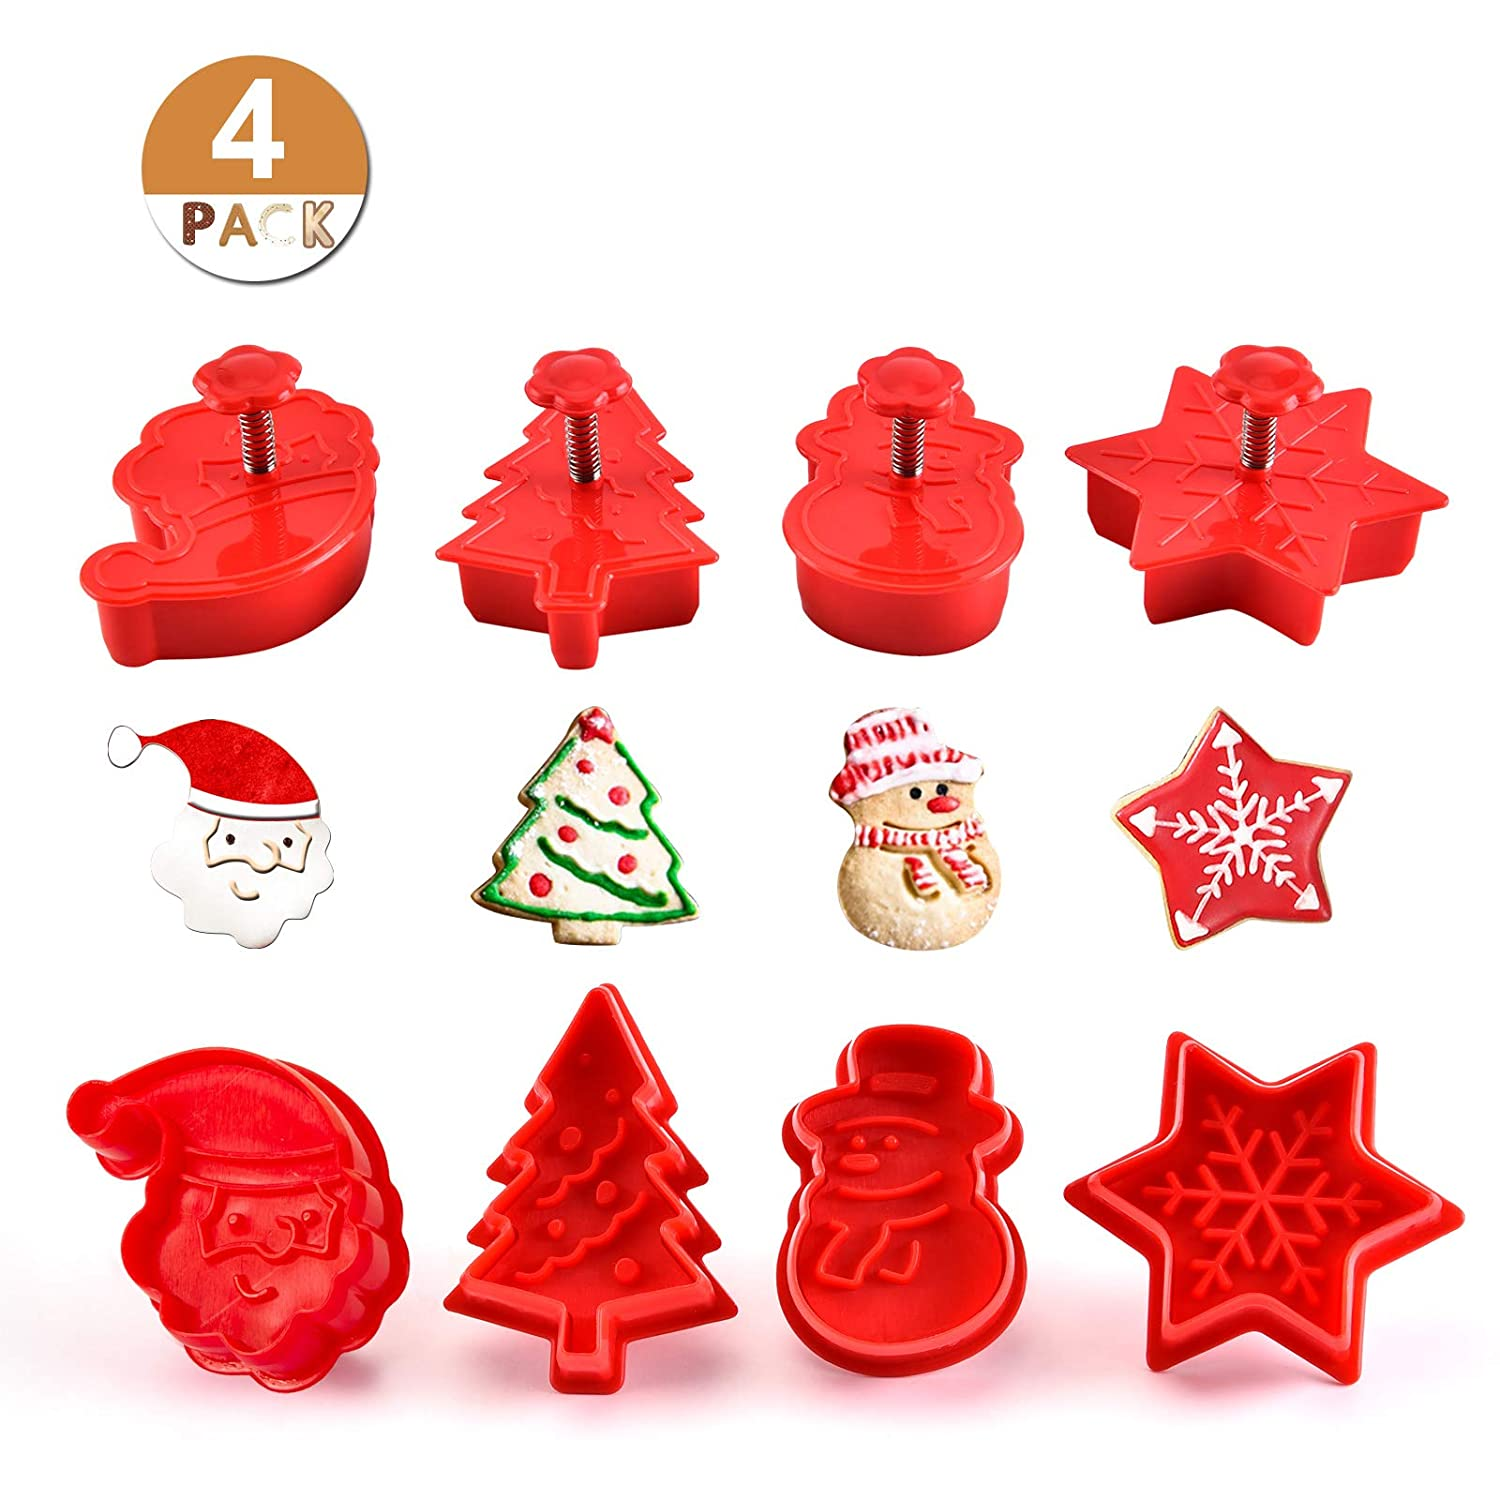 GWHOLE 4 Pack of Winter Pastry Cookie Fondant Stampers for Kids Holiday Birthday Party